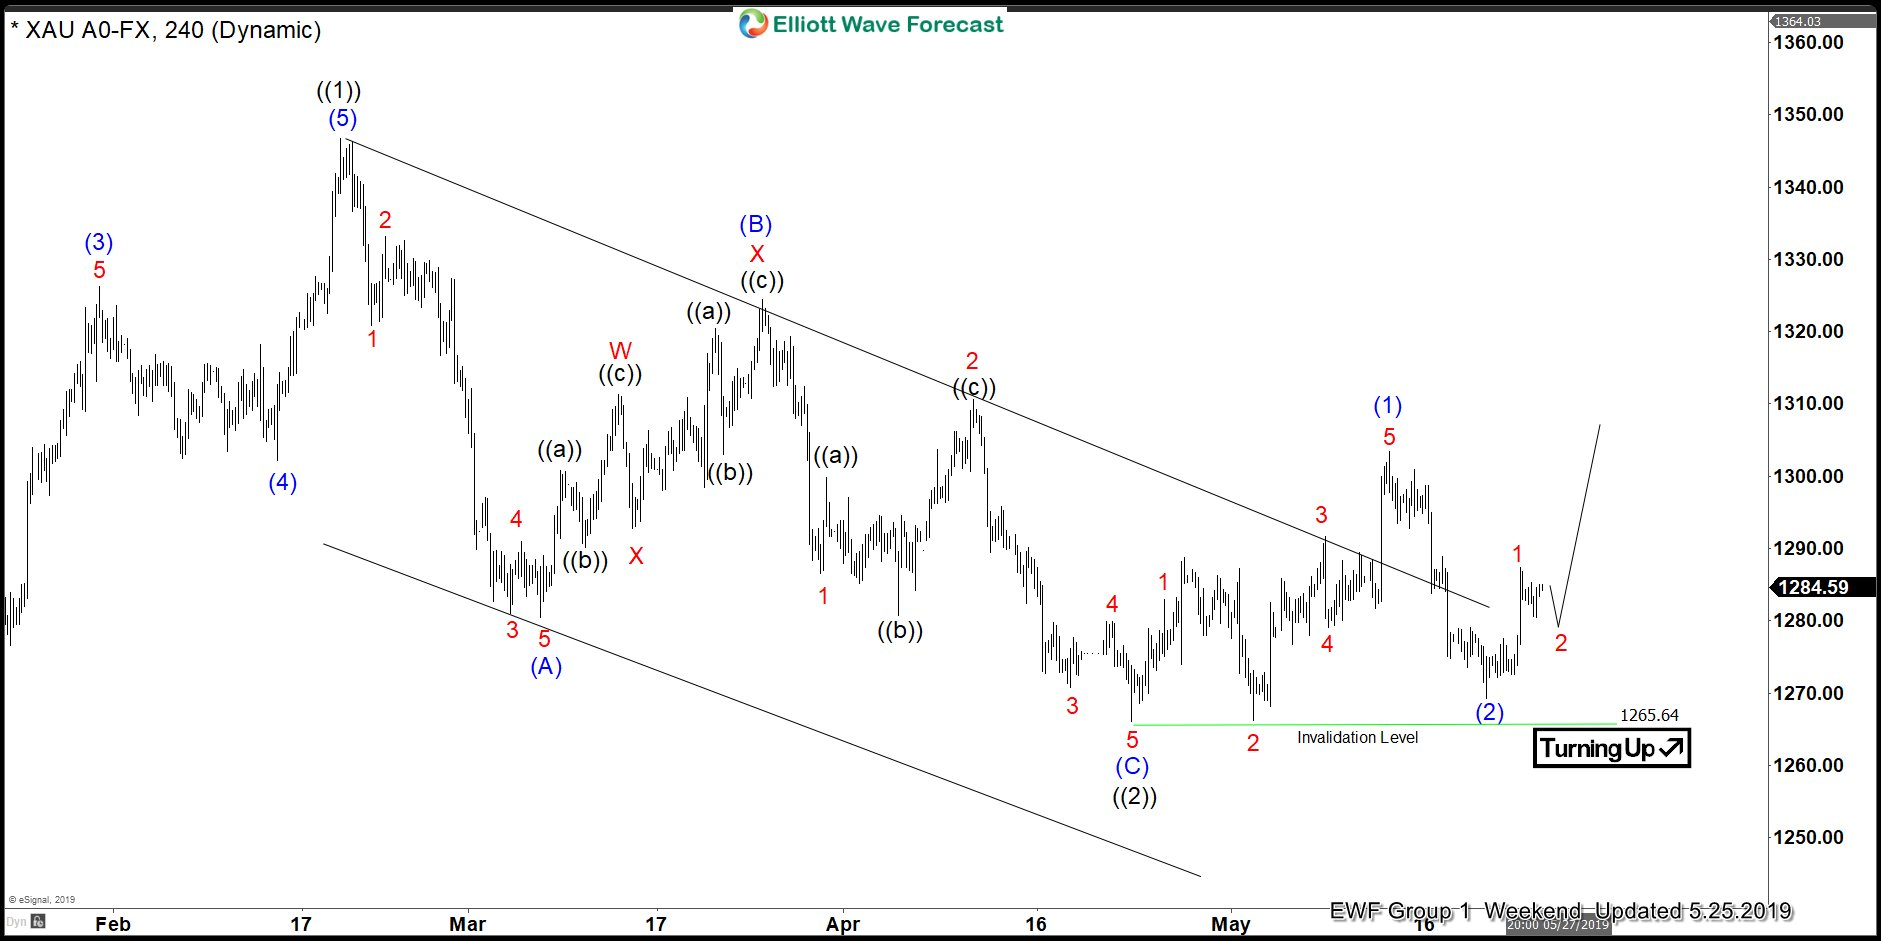 Gold (XAUUSD) Mid-term Elliott Wave Analysis 5.25.2019